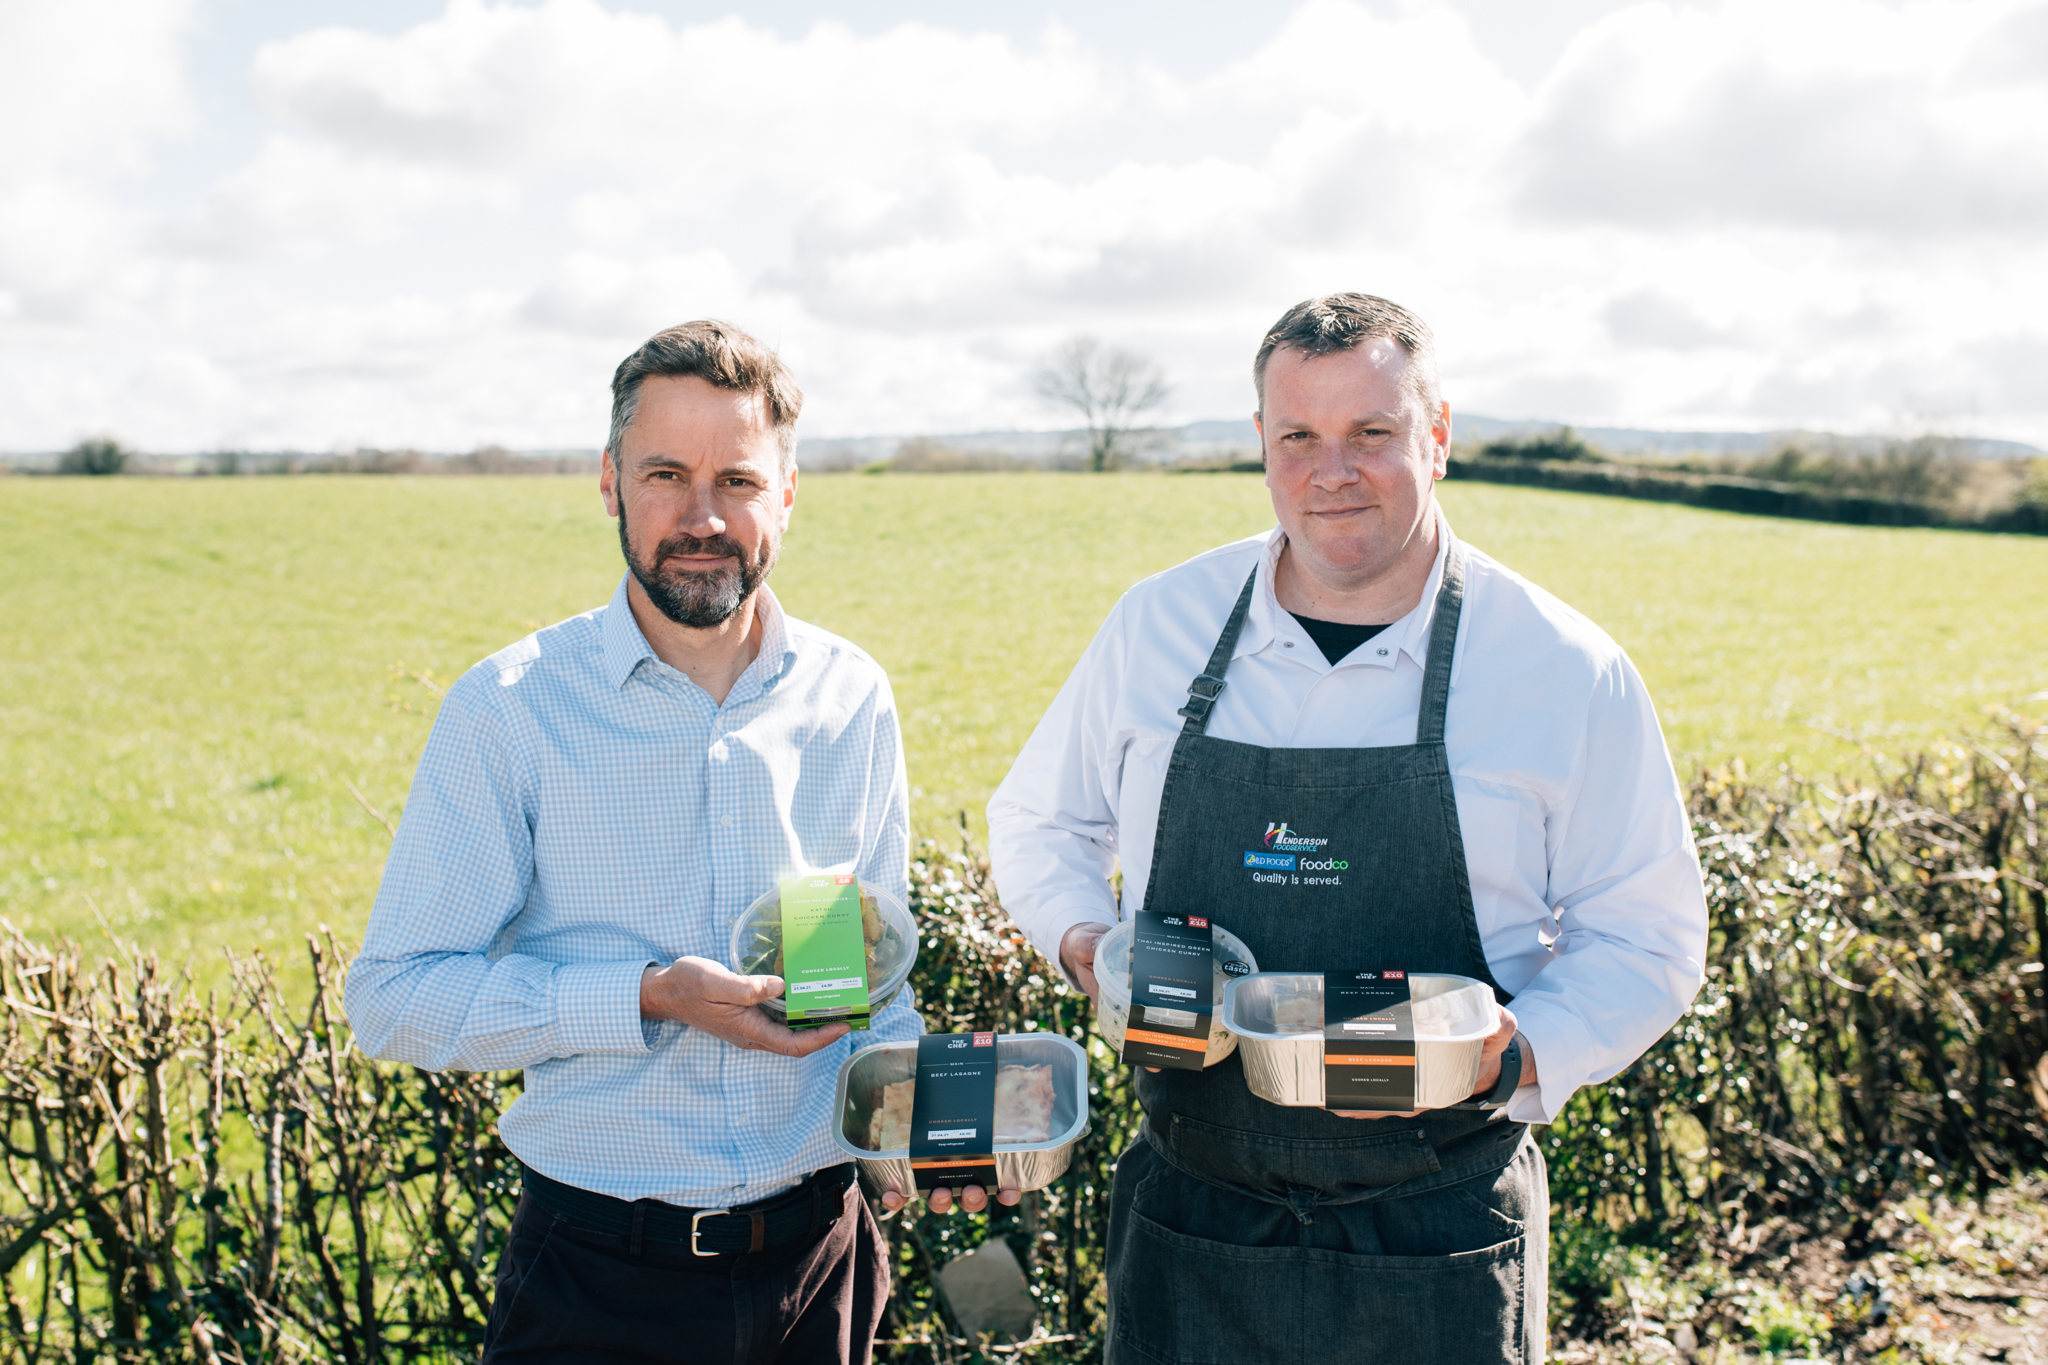 Shopper demand for convenience sparks major investment in premium prepared meals